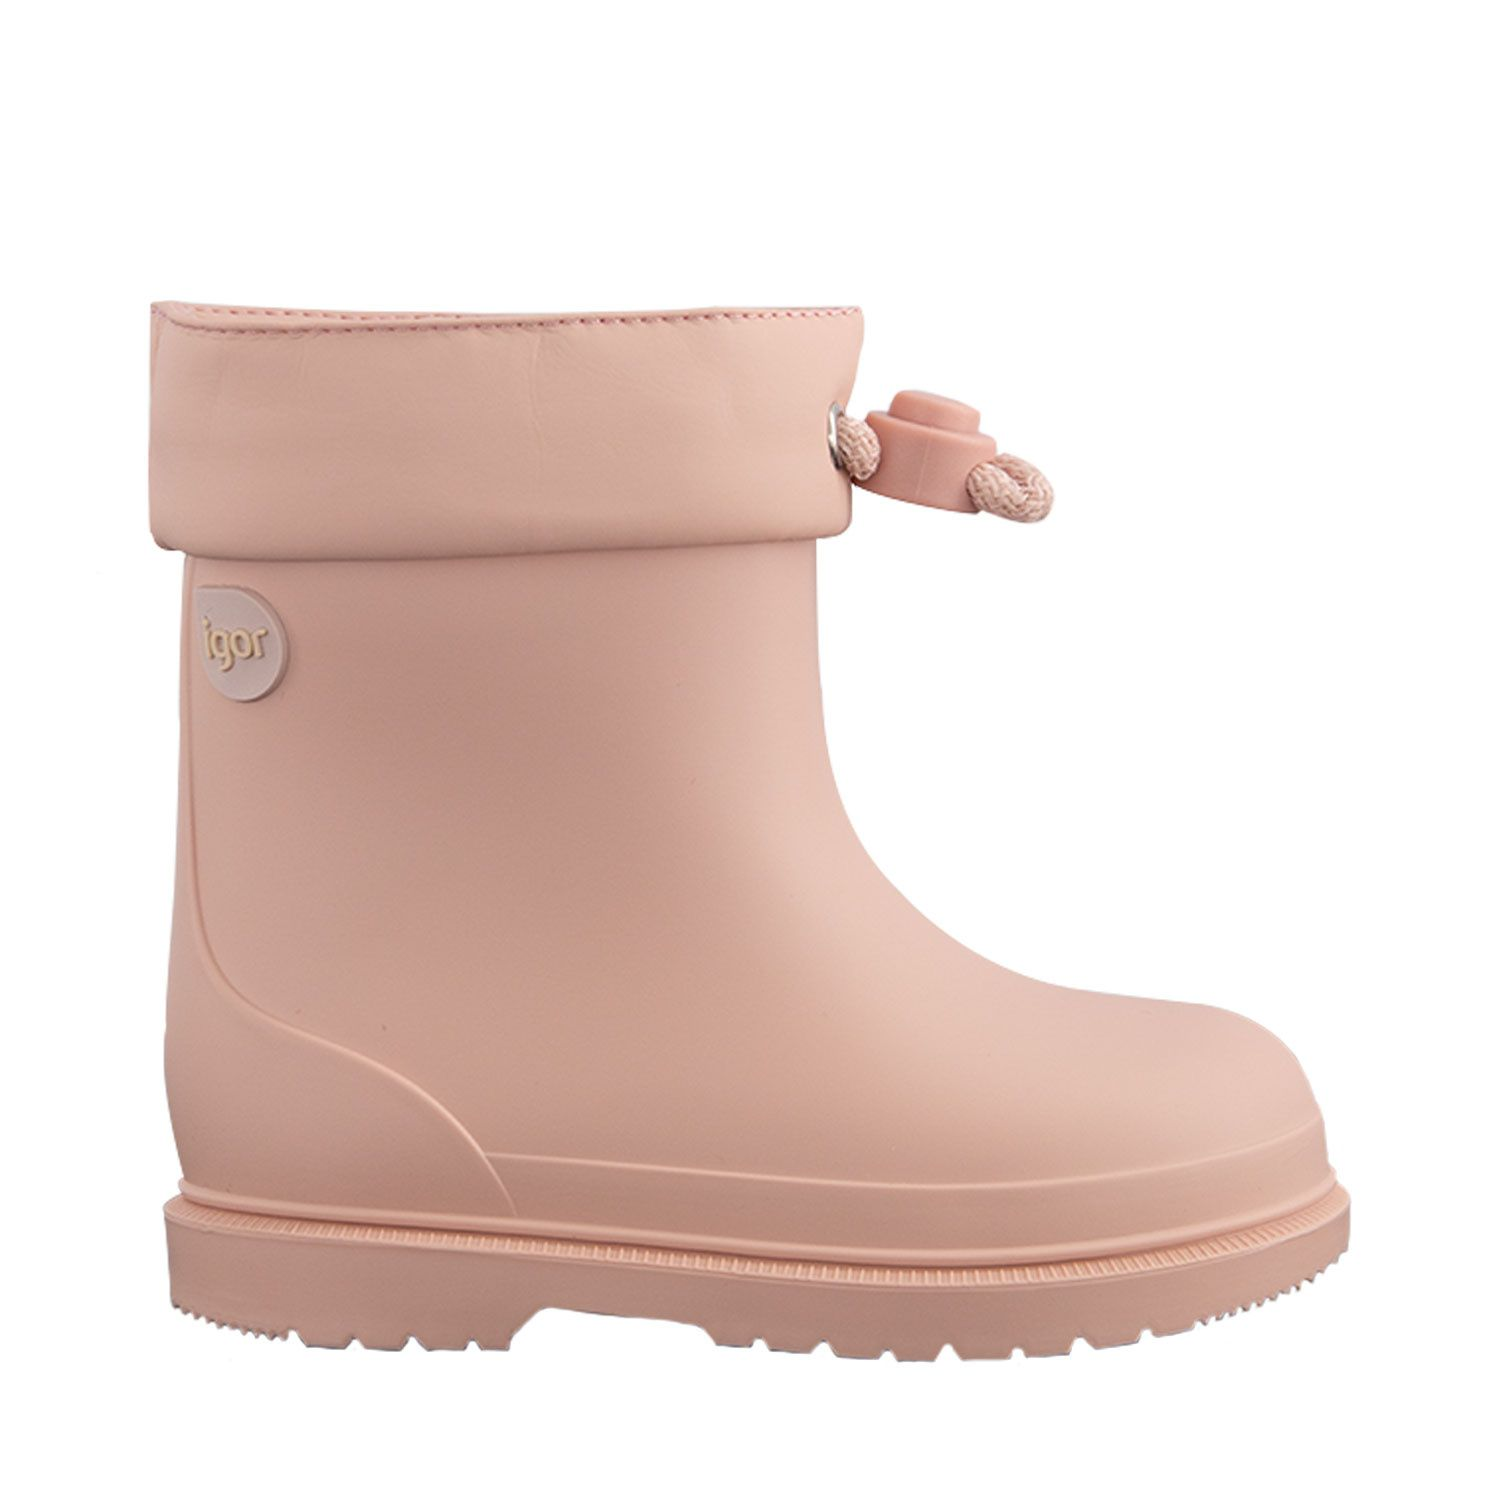 Picture of Igor W10257 kids boots light pink